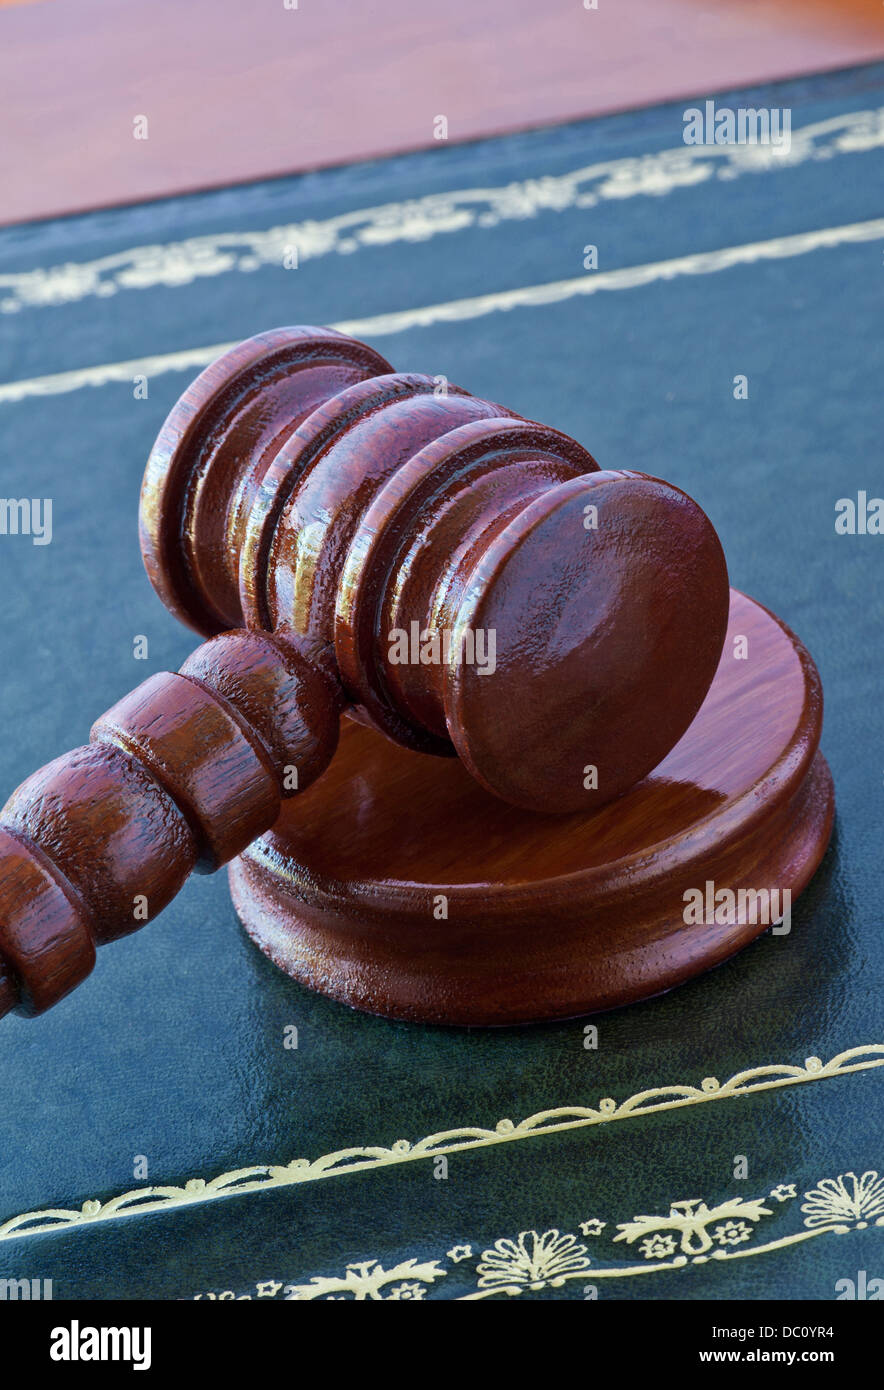 Auctioneers/Judges wooden gavel and striker block on traditional leather inlaid desk - Stock Image